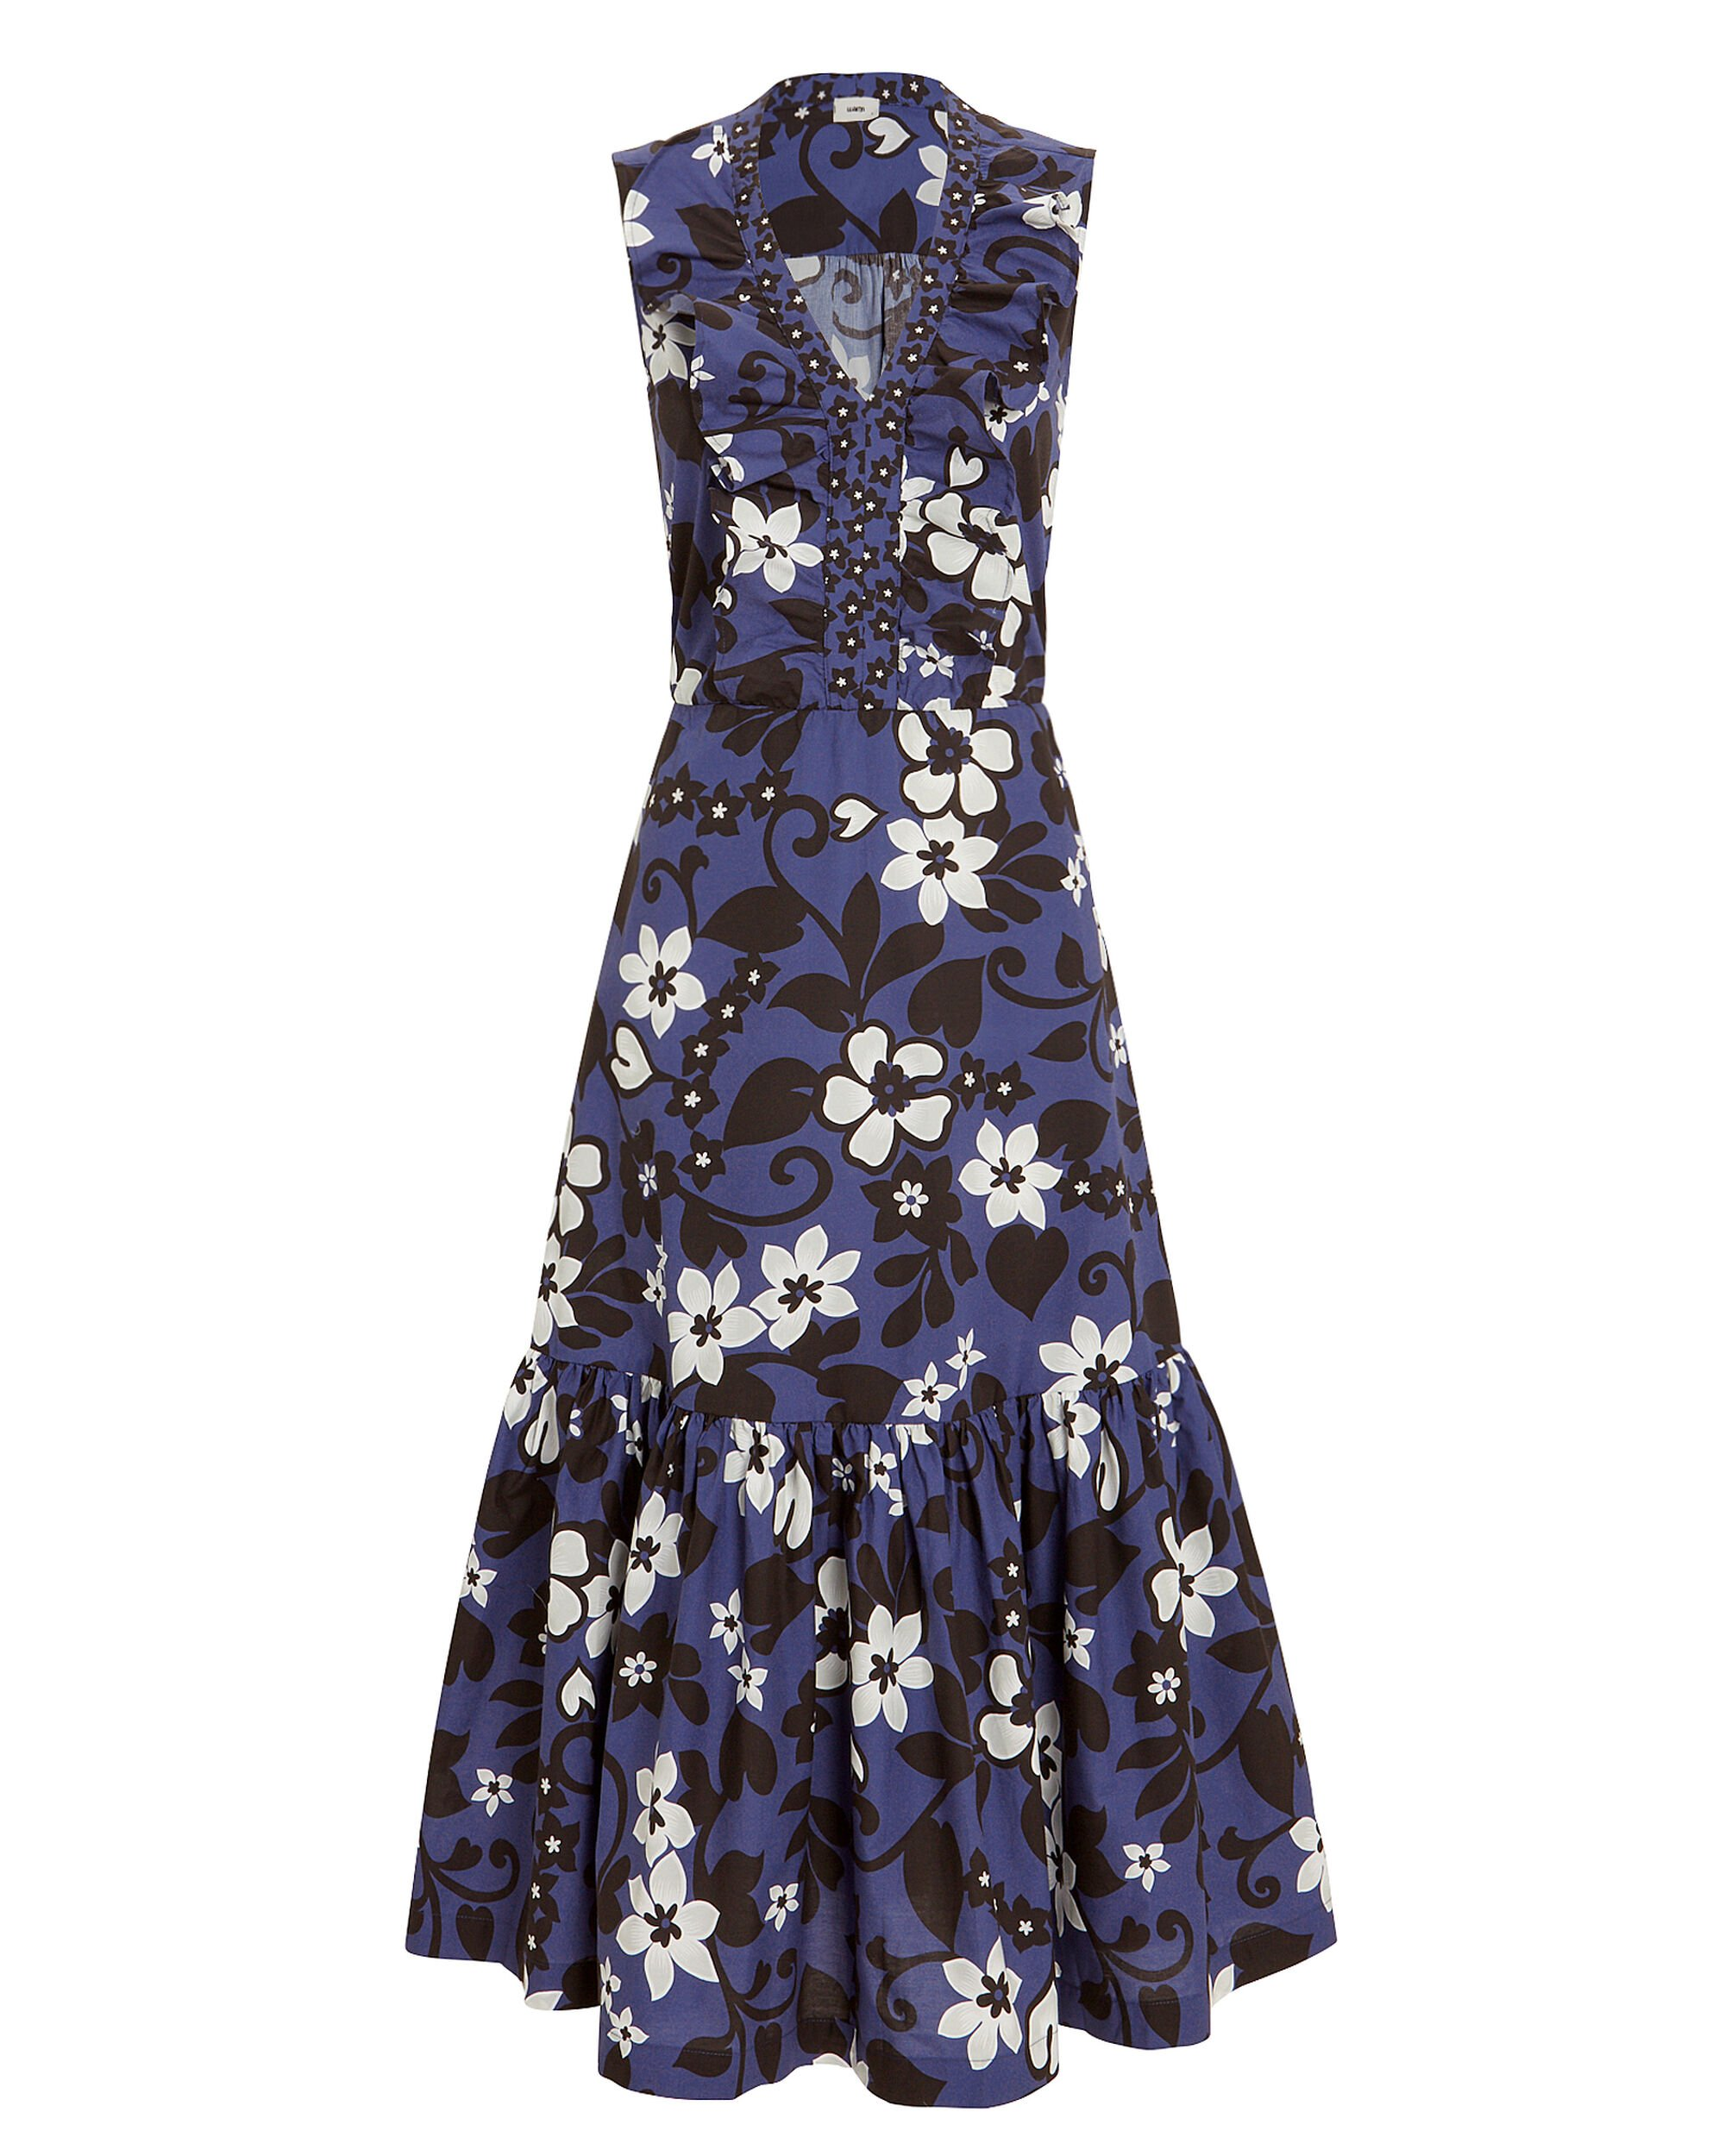 Sierra Dress, NAVY, hi-res